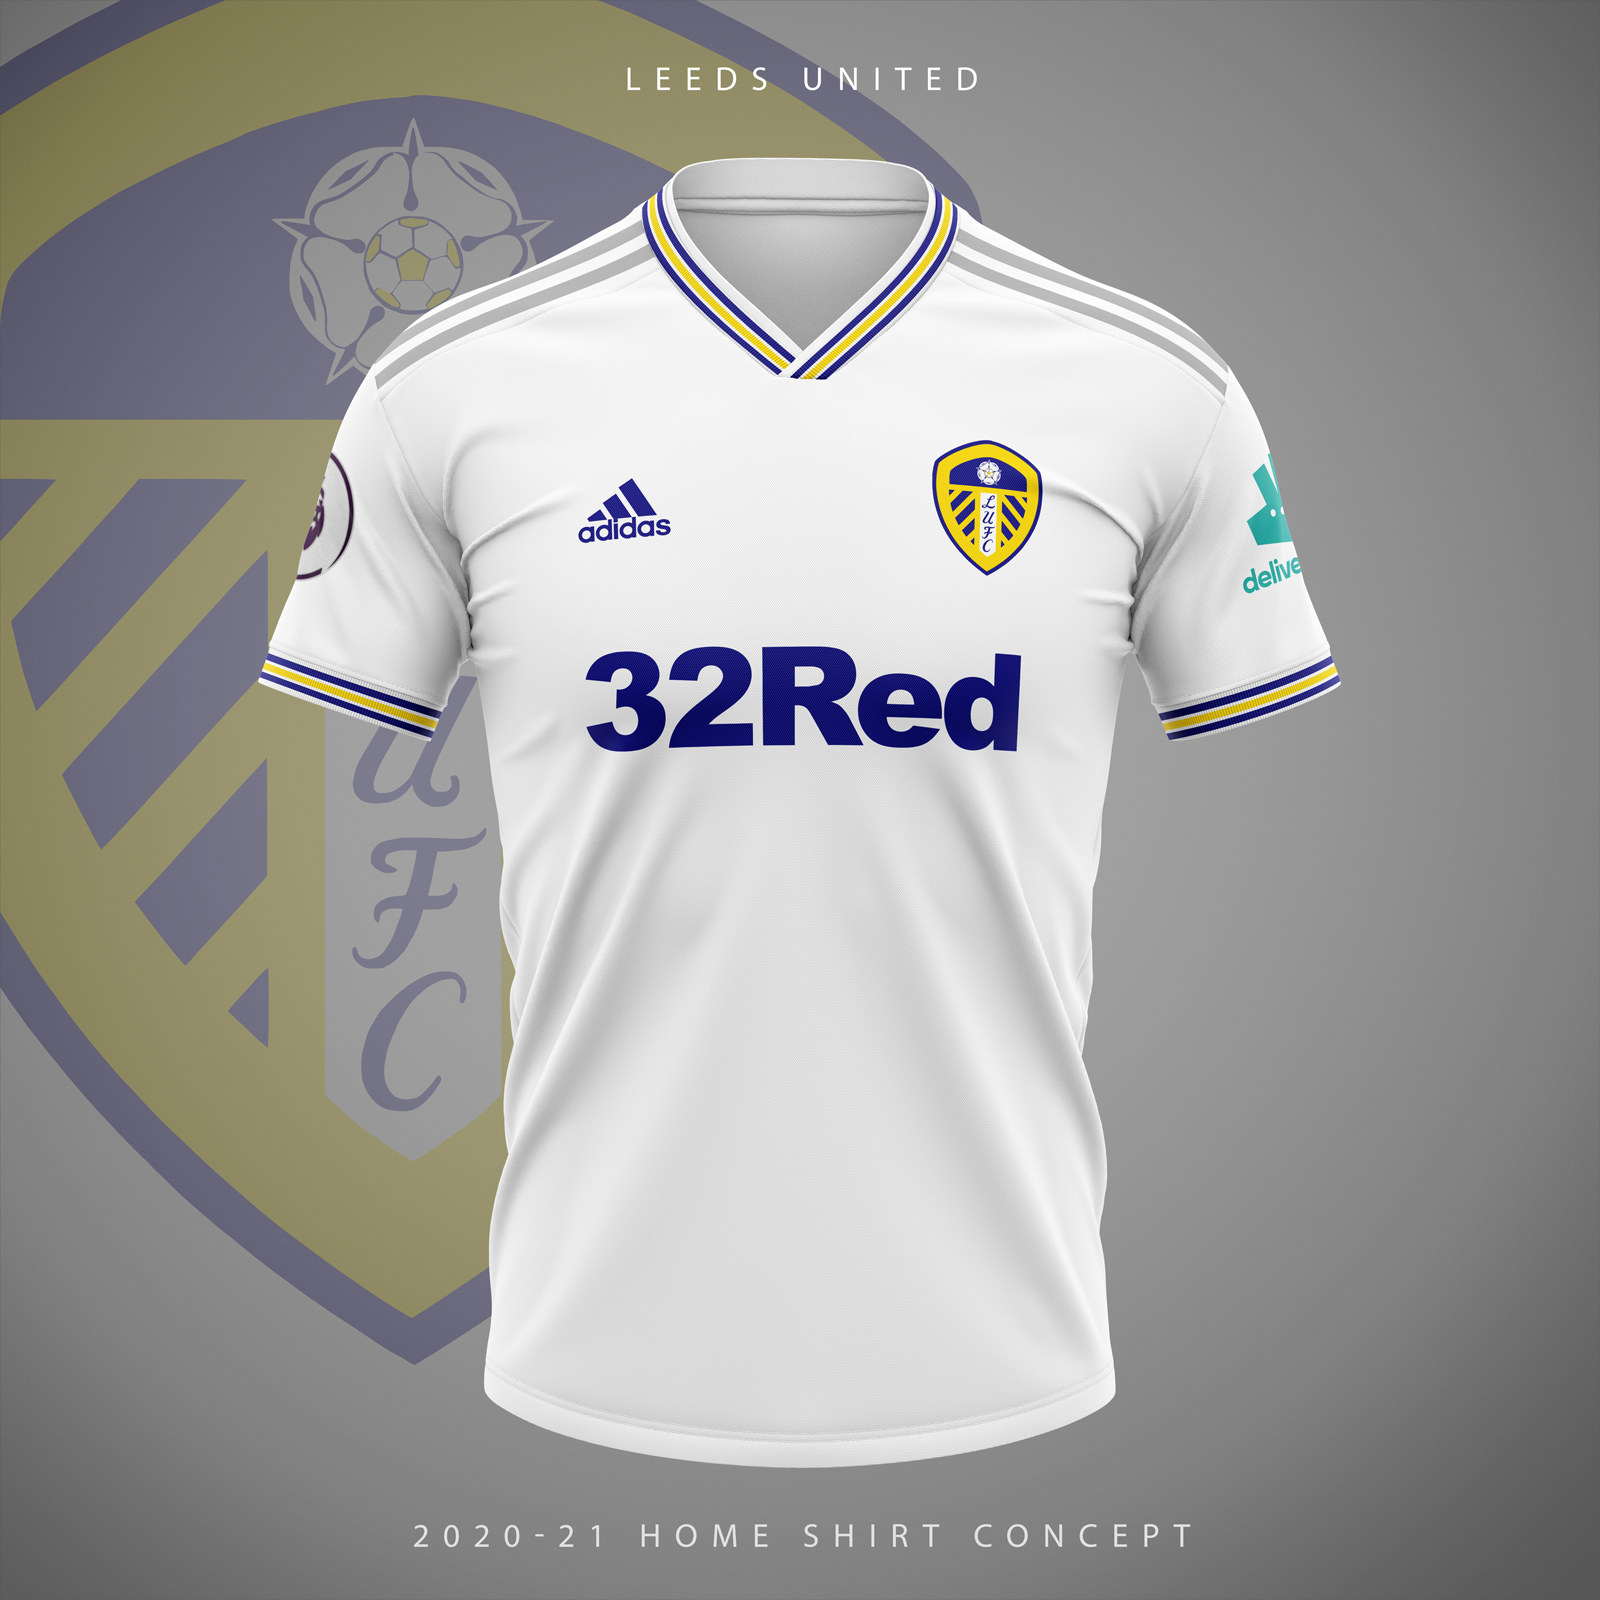 Leeds-United-Home.png